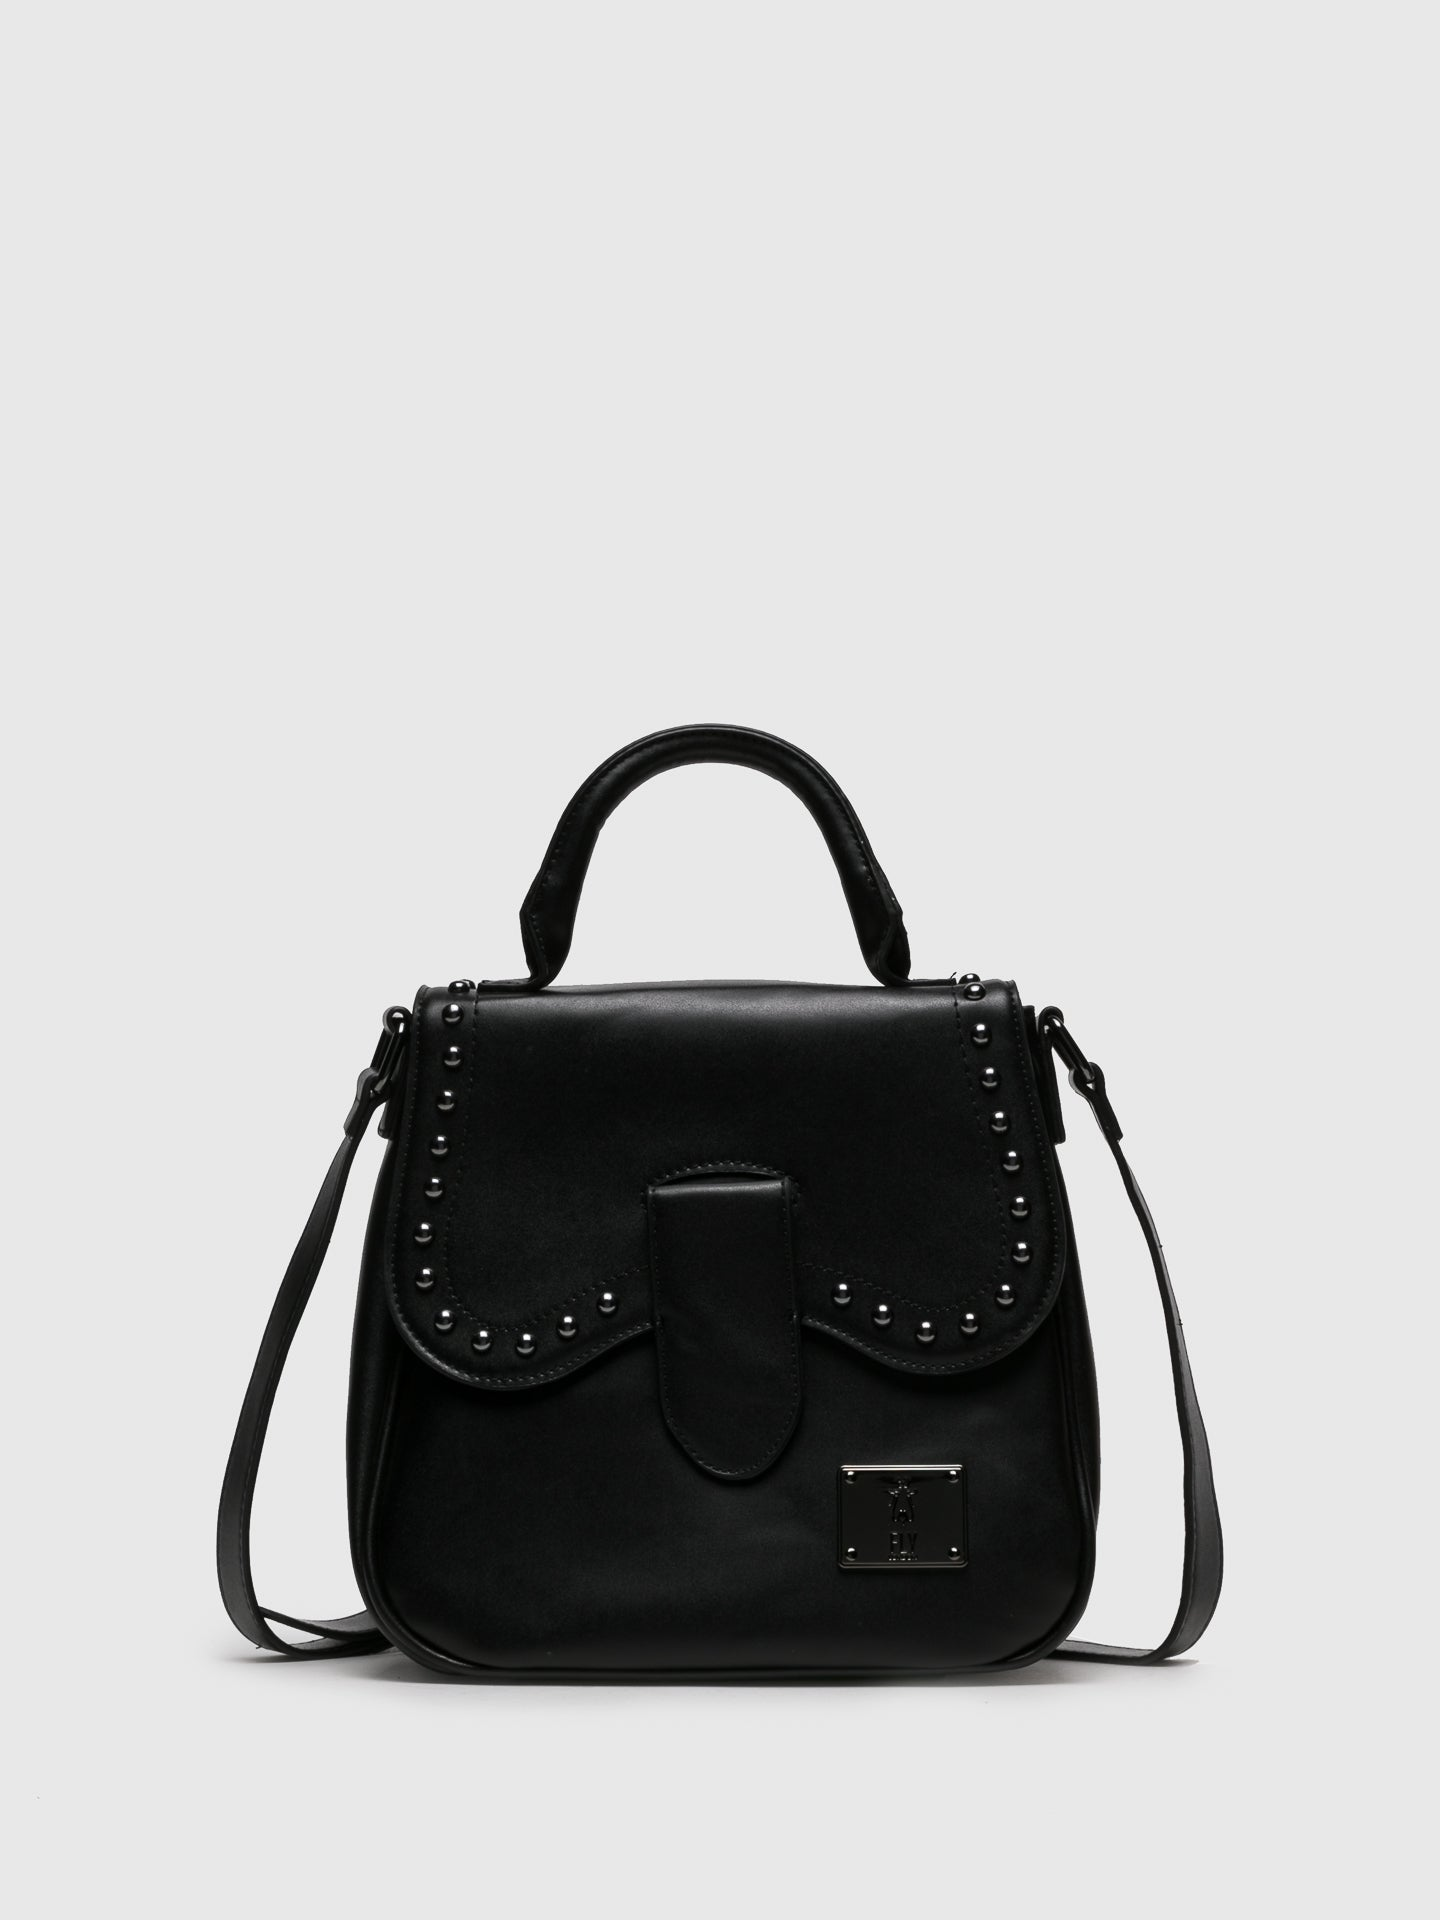 Fly London Rucksack in Noir